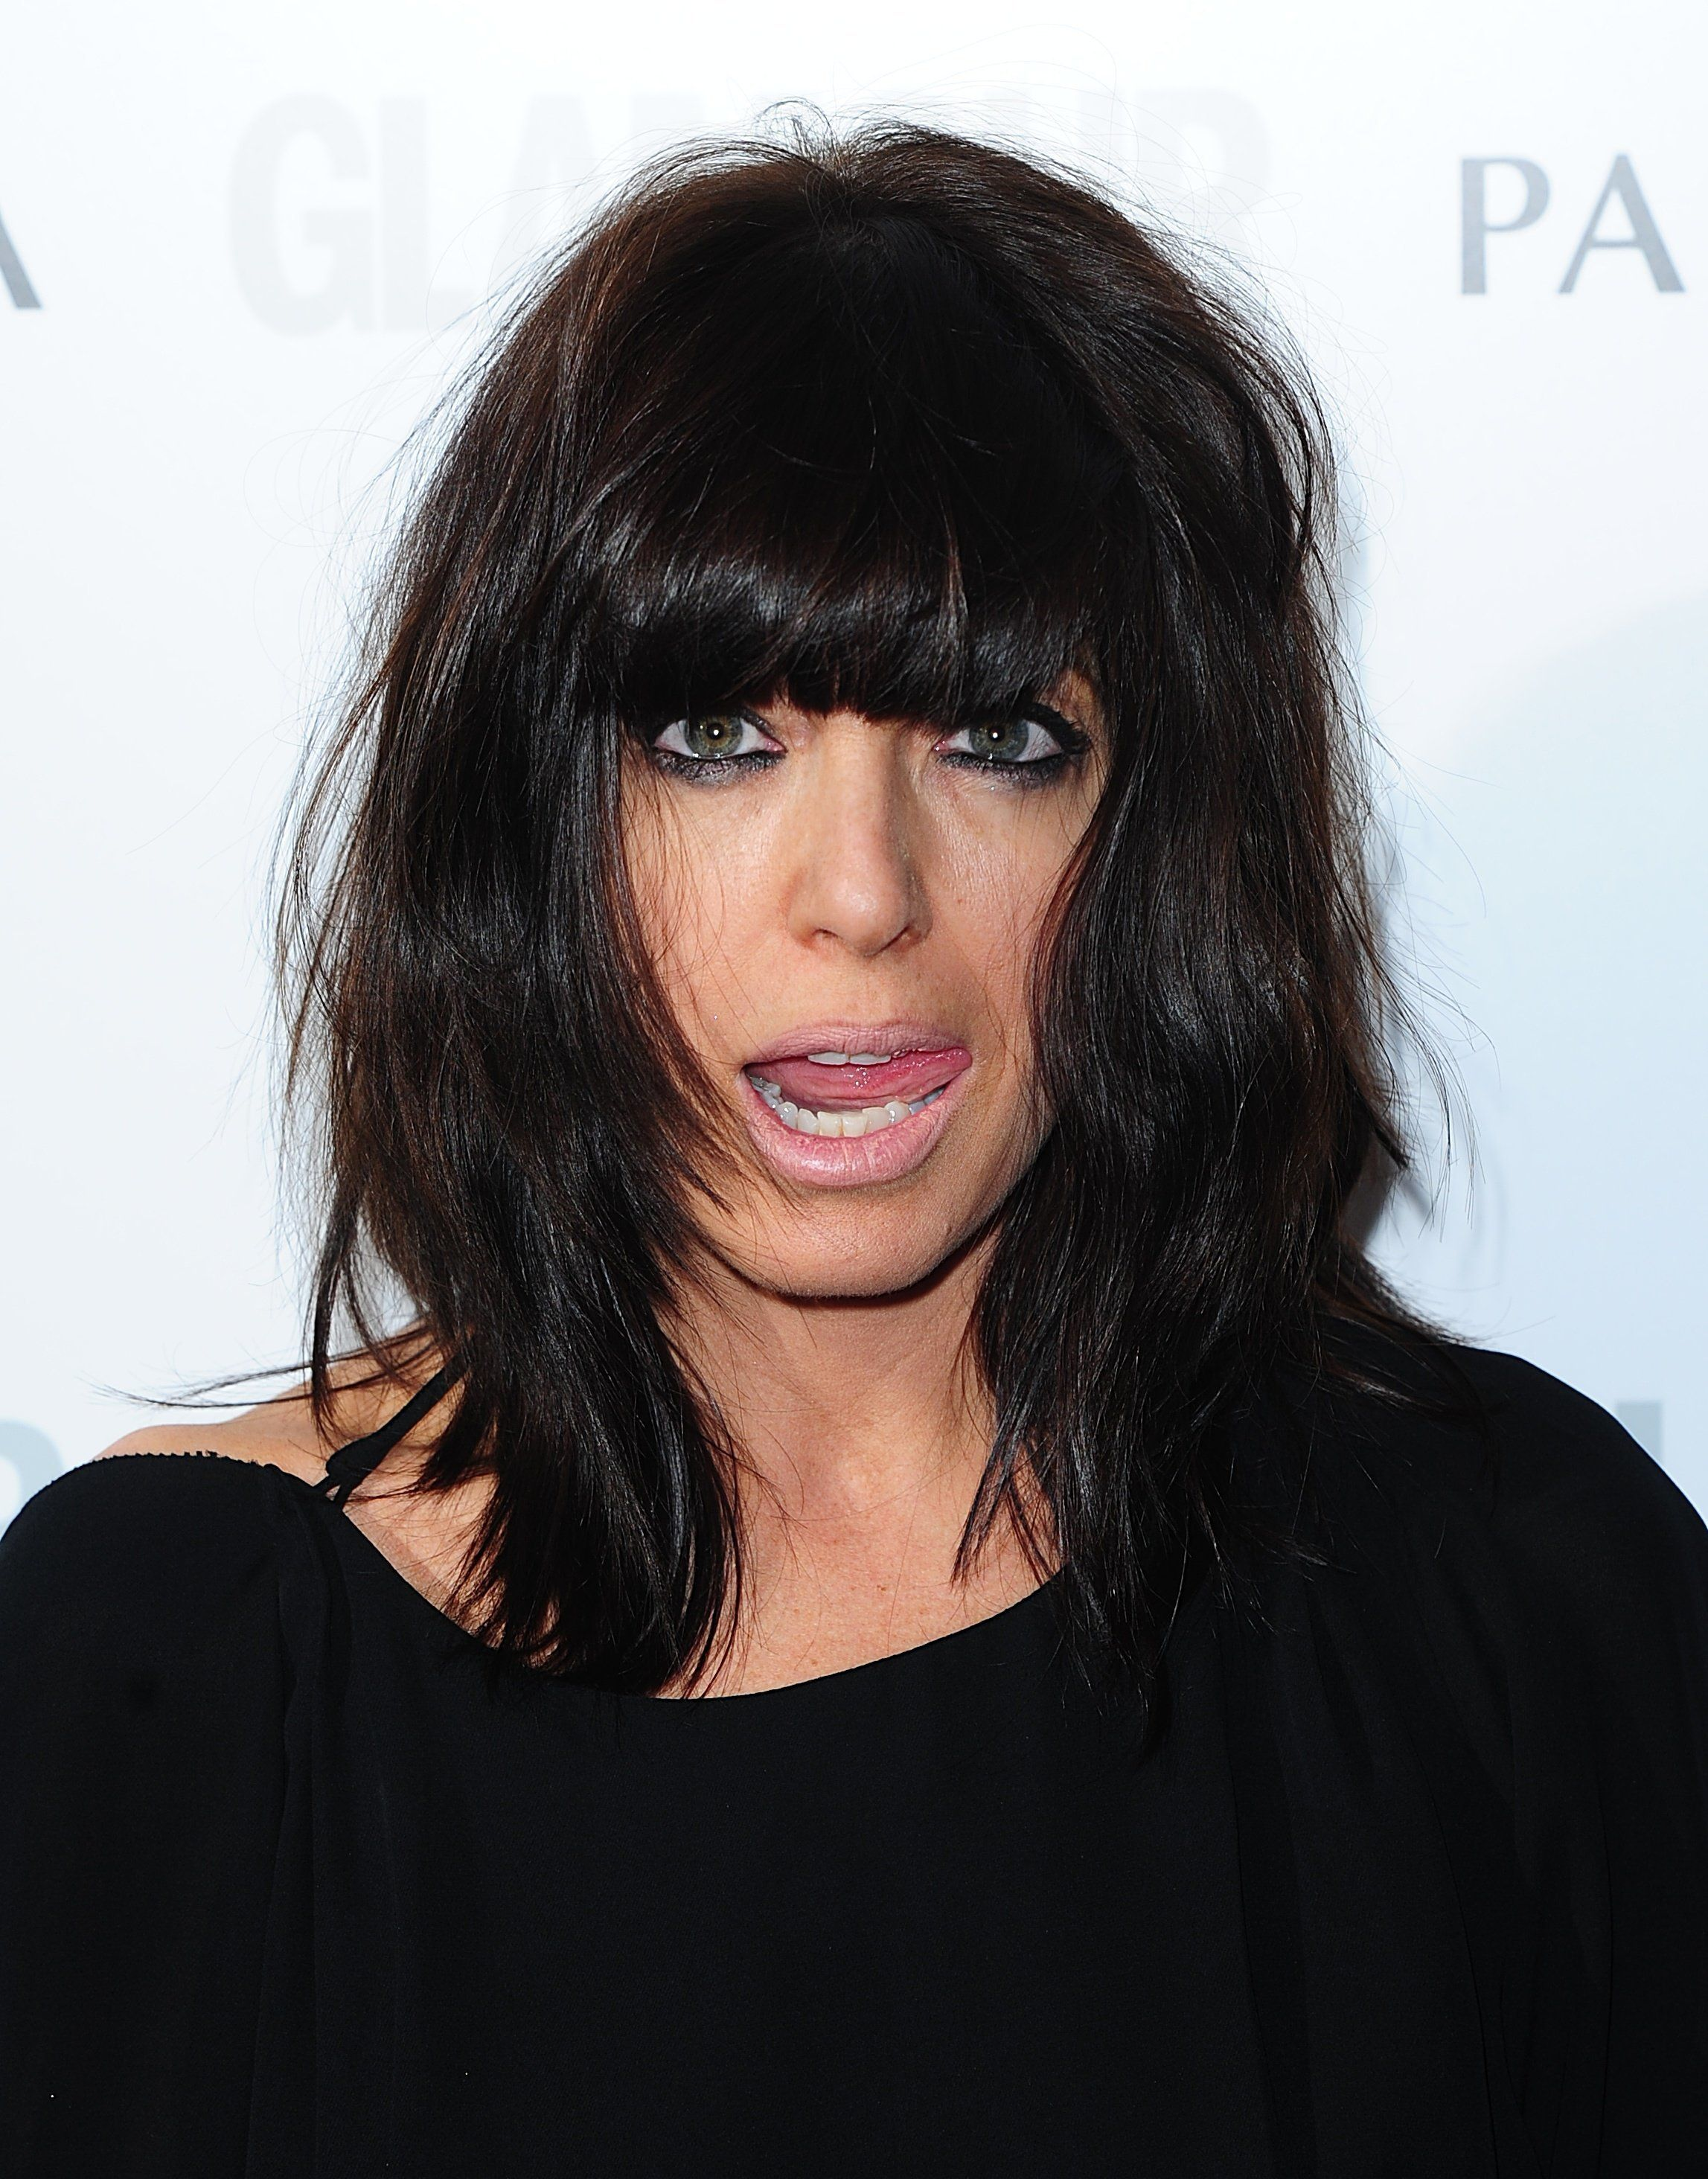 Claudia Winkleman On Why She Sometimes 'Looks Like She's Slept In A Skip' (Her